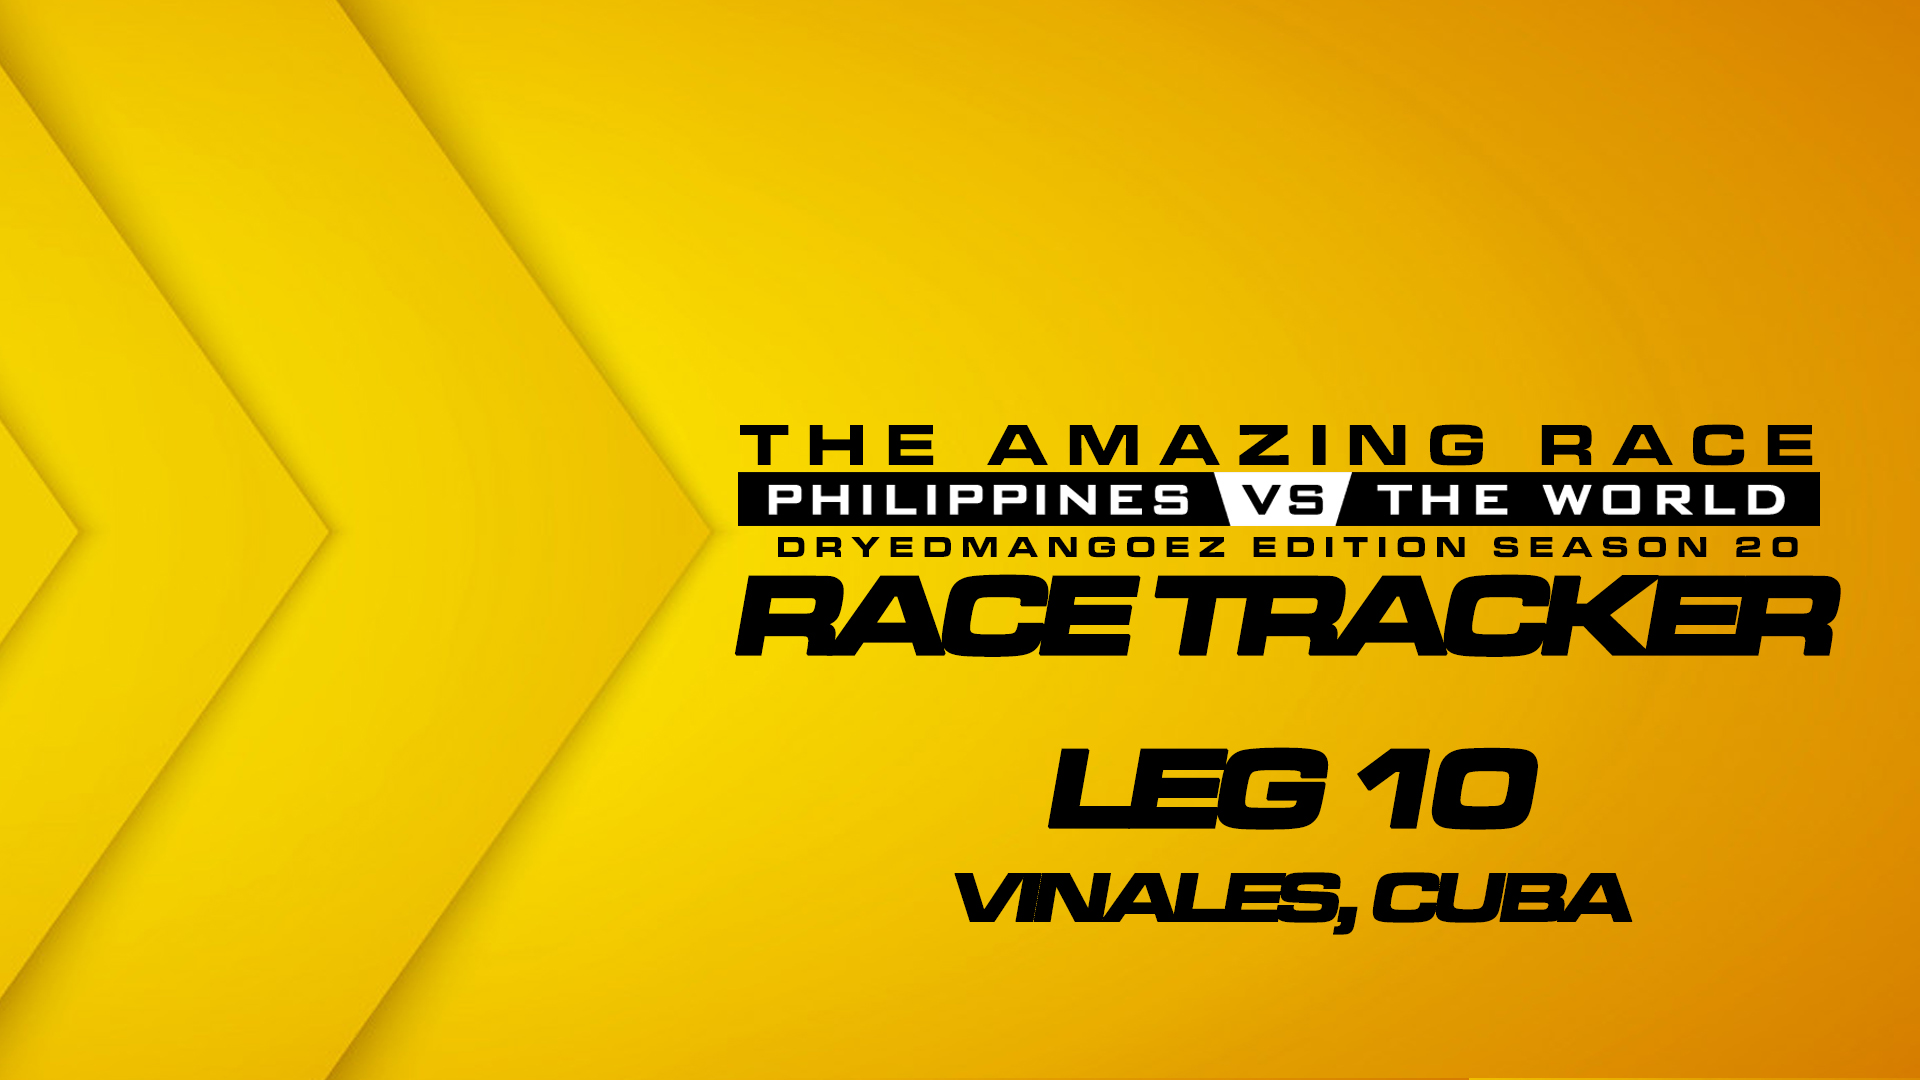 The Amazing Race Philippines vs The World (DryedMangoez Edition Season 20) Race Tracker – Leg 10